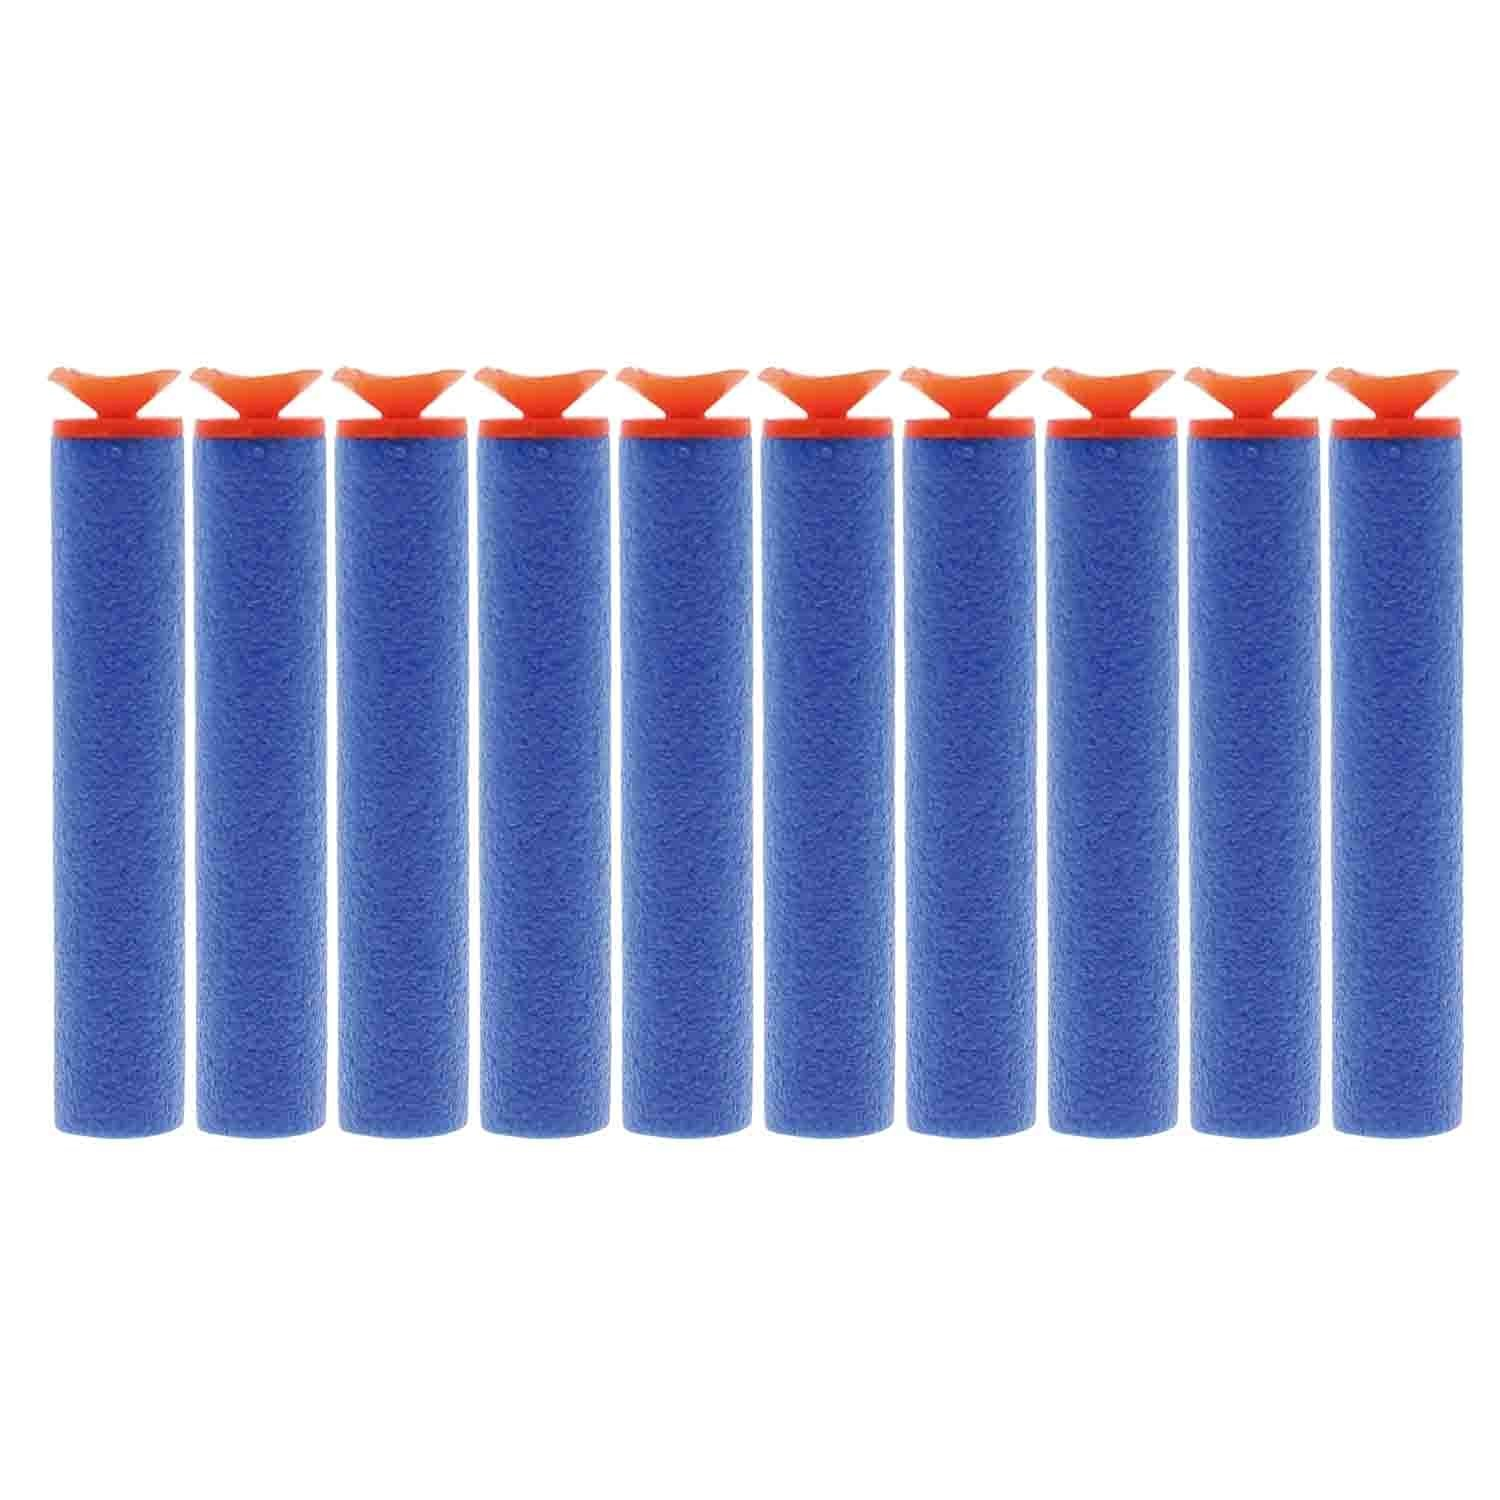 AMTION 100pcs 7.2cm Refill Bullet Universal Suction Darts for Nerf N-Strike Elite Series Blasters Toy Gun Nerf Ammo